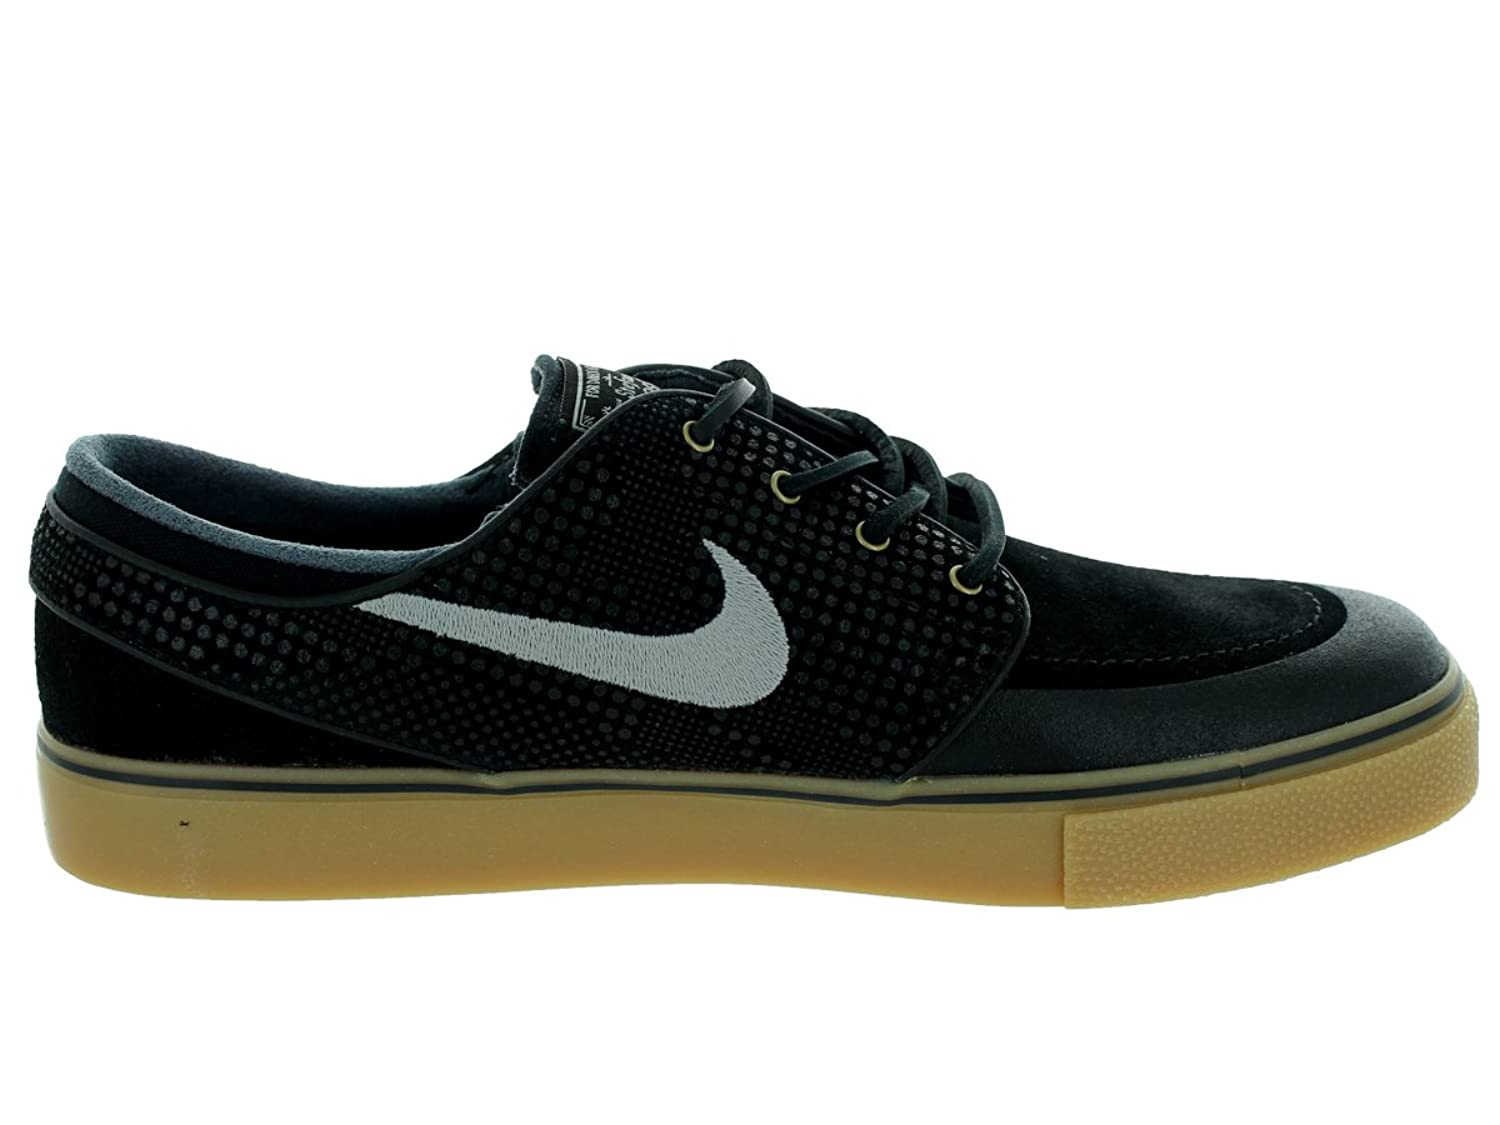 Nike Men s Zoom Stefan Janoski PR SE Skate Shoe Blk/Mdm Gry/Gm Lght Brwn/ Anthr 8 D(M) US: Buy Online at Low Prices in India - Amazon.in